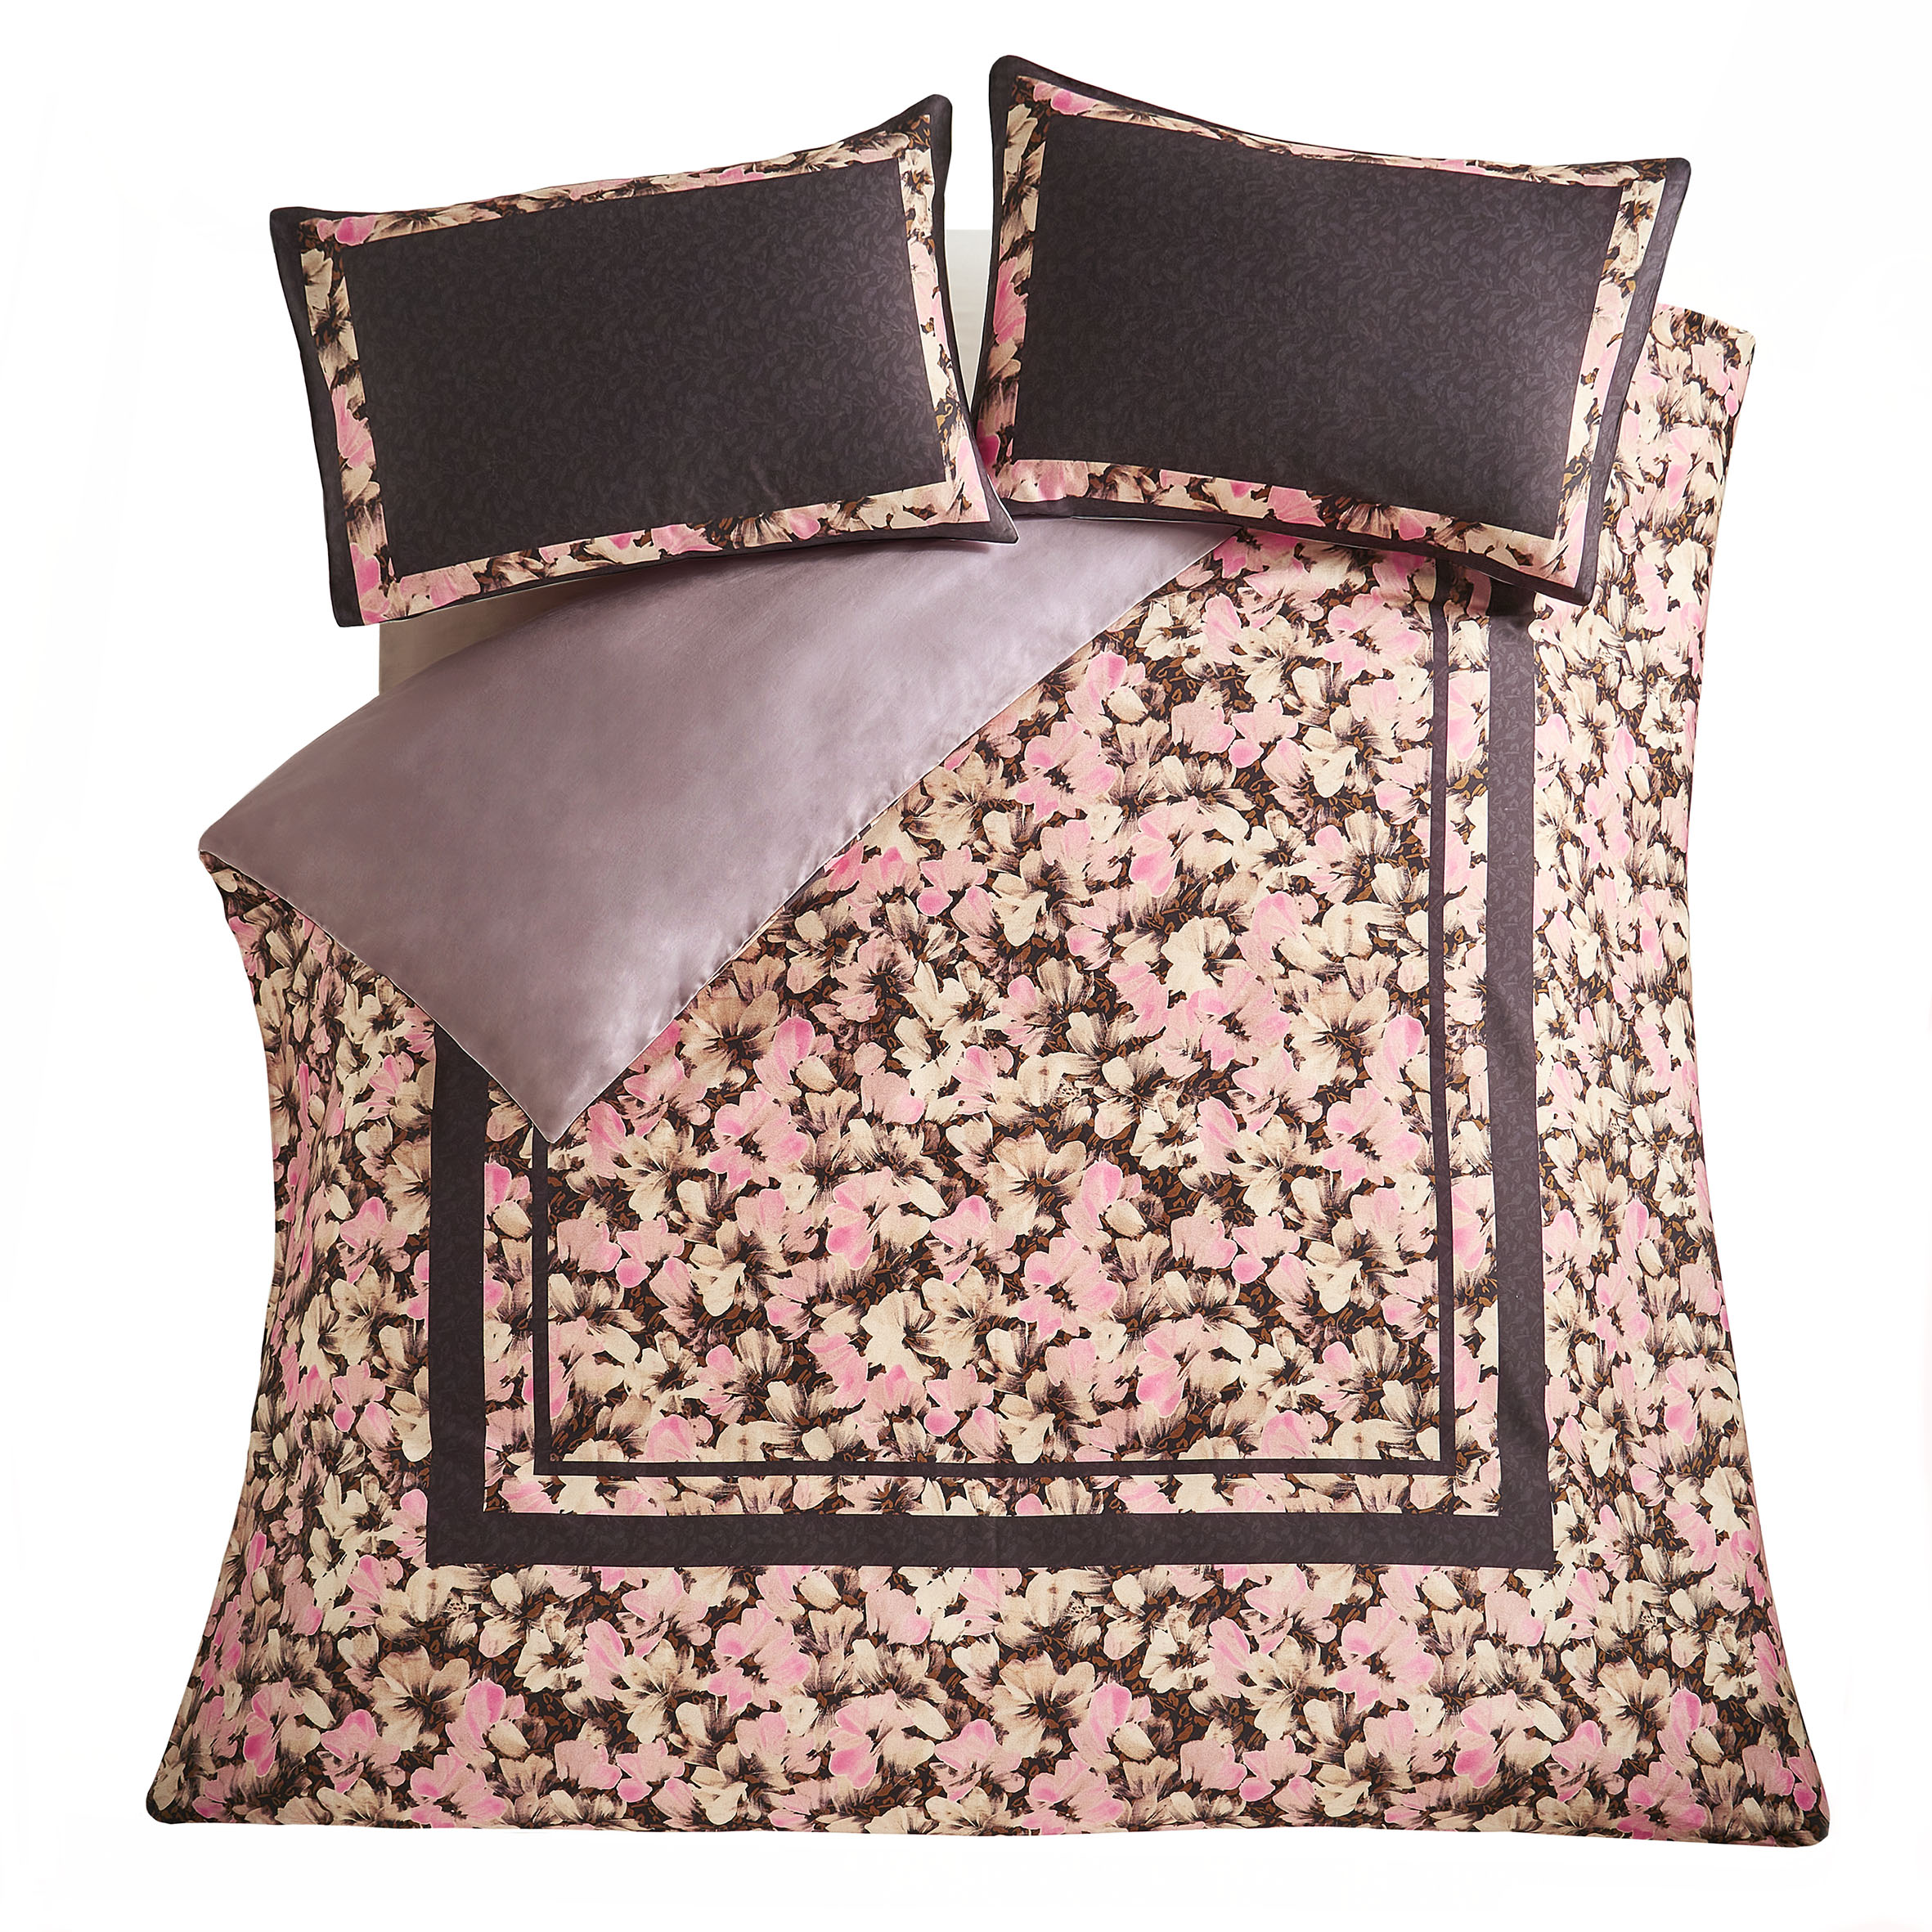 SMUDGE FLORAL DUVET COVER KING SIZE - COSMO